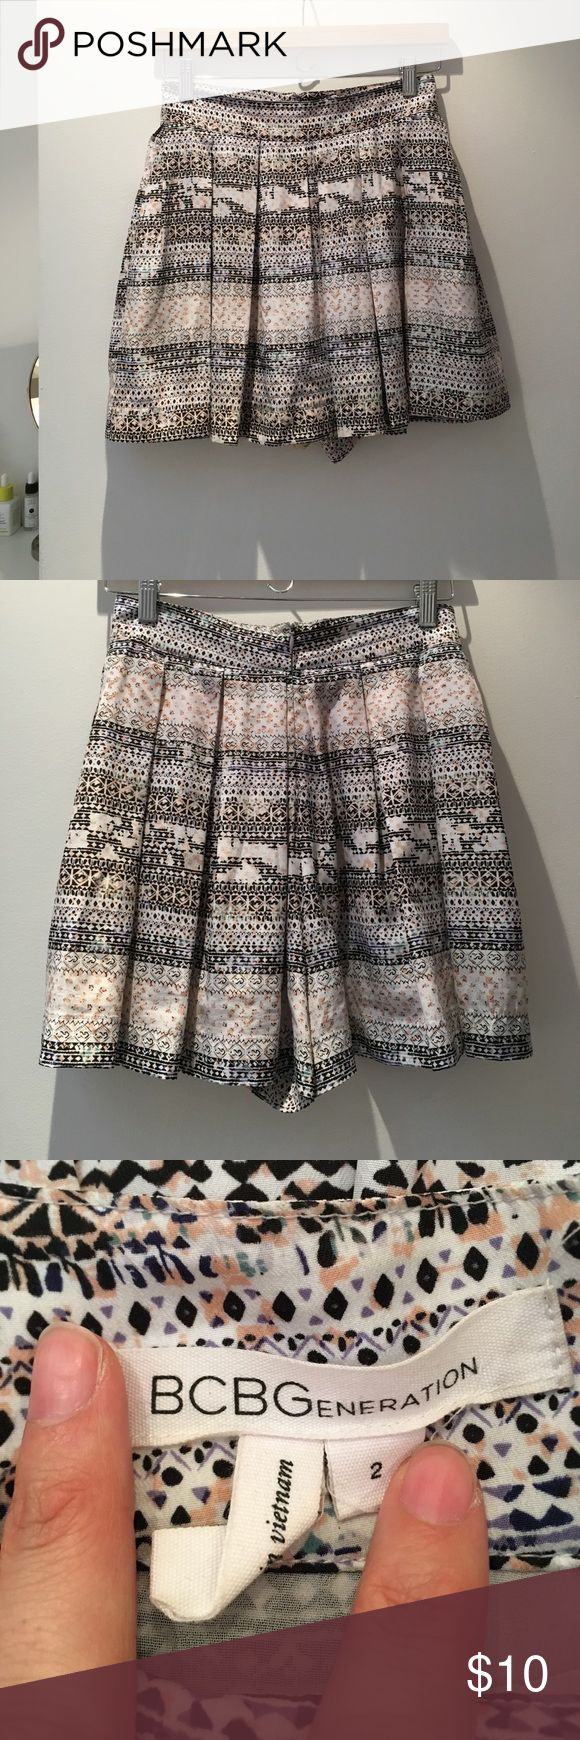 BCBGeneration | Pleated Shorts | Size 2 Cute BCBGeneration shorts. High waisted with pleats. Has pockets. Very flowy! Features a cute geometric print in pastel colors. BCBGeneration Shorts